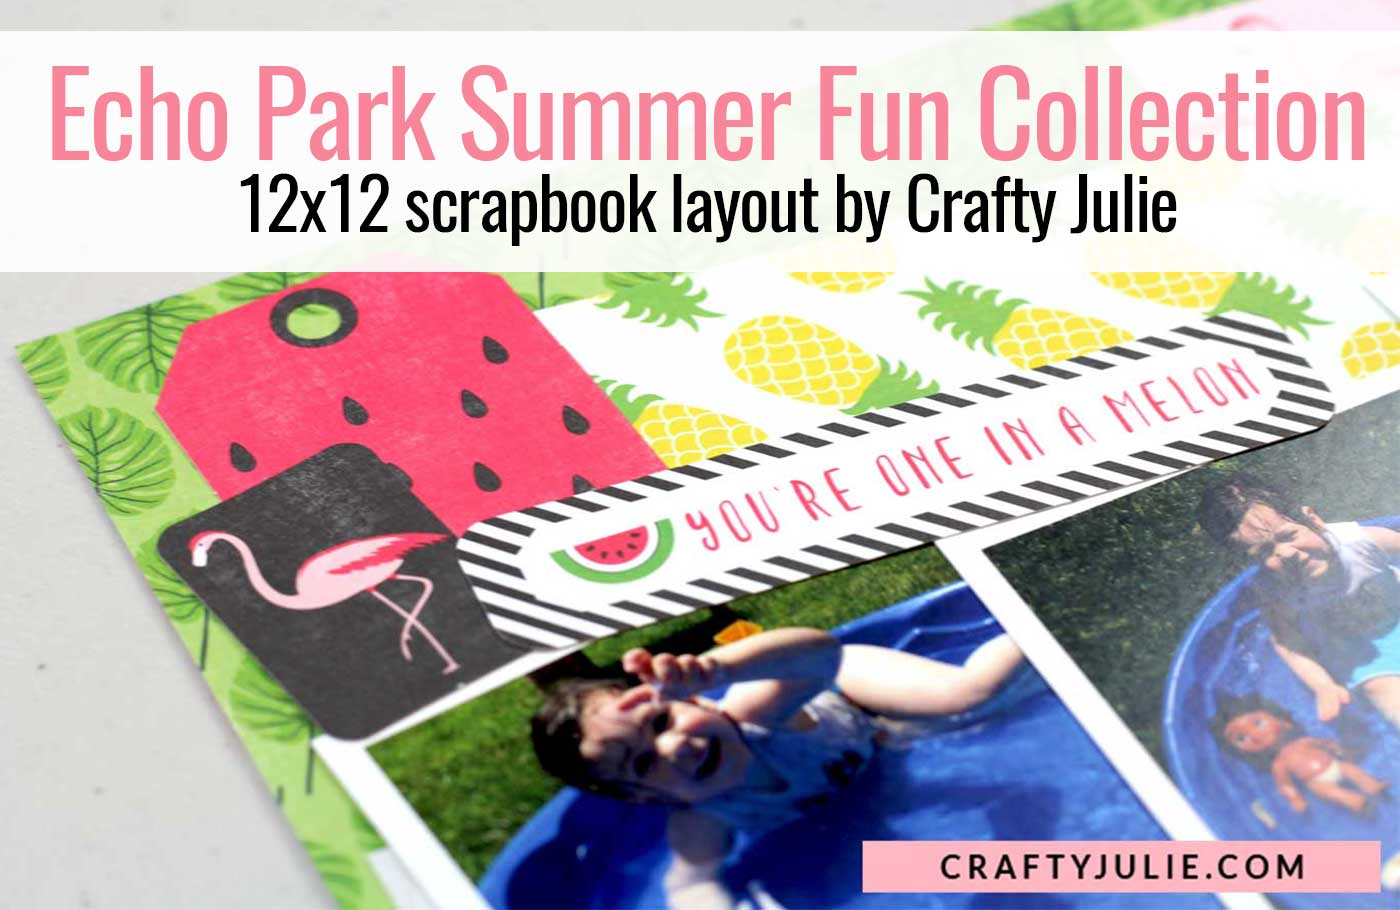 Crafty Julie | Echo Park Summer Fun Collection Kit Layout